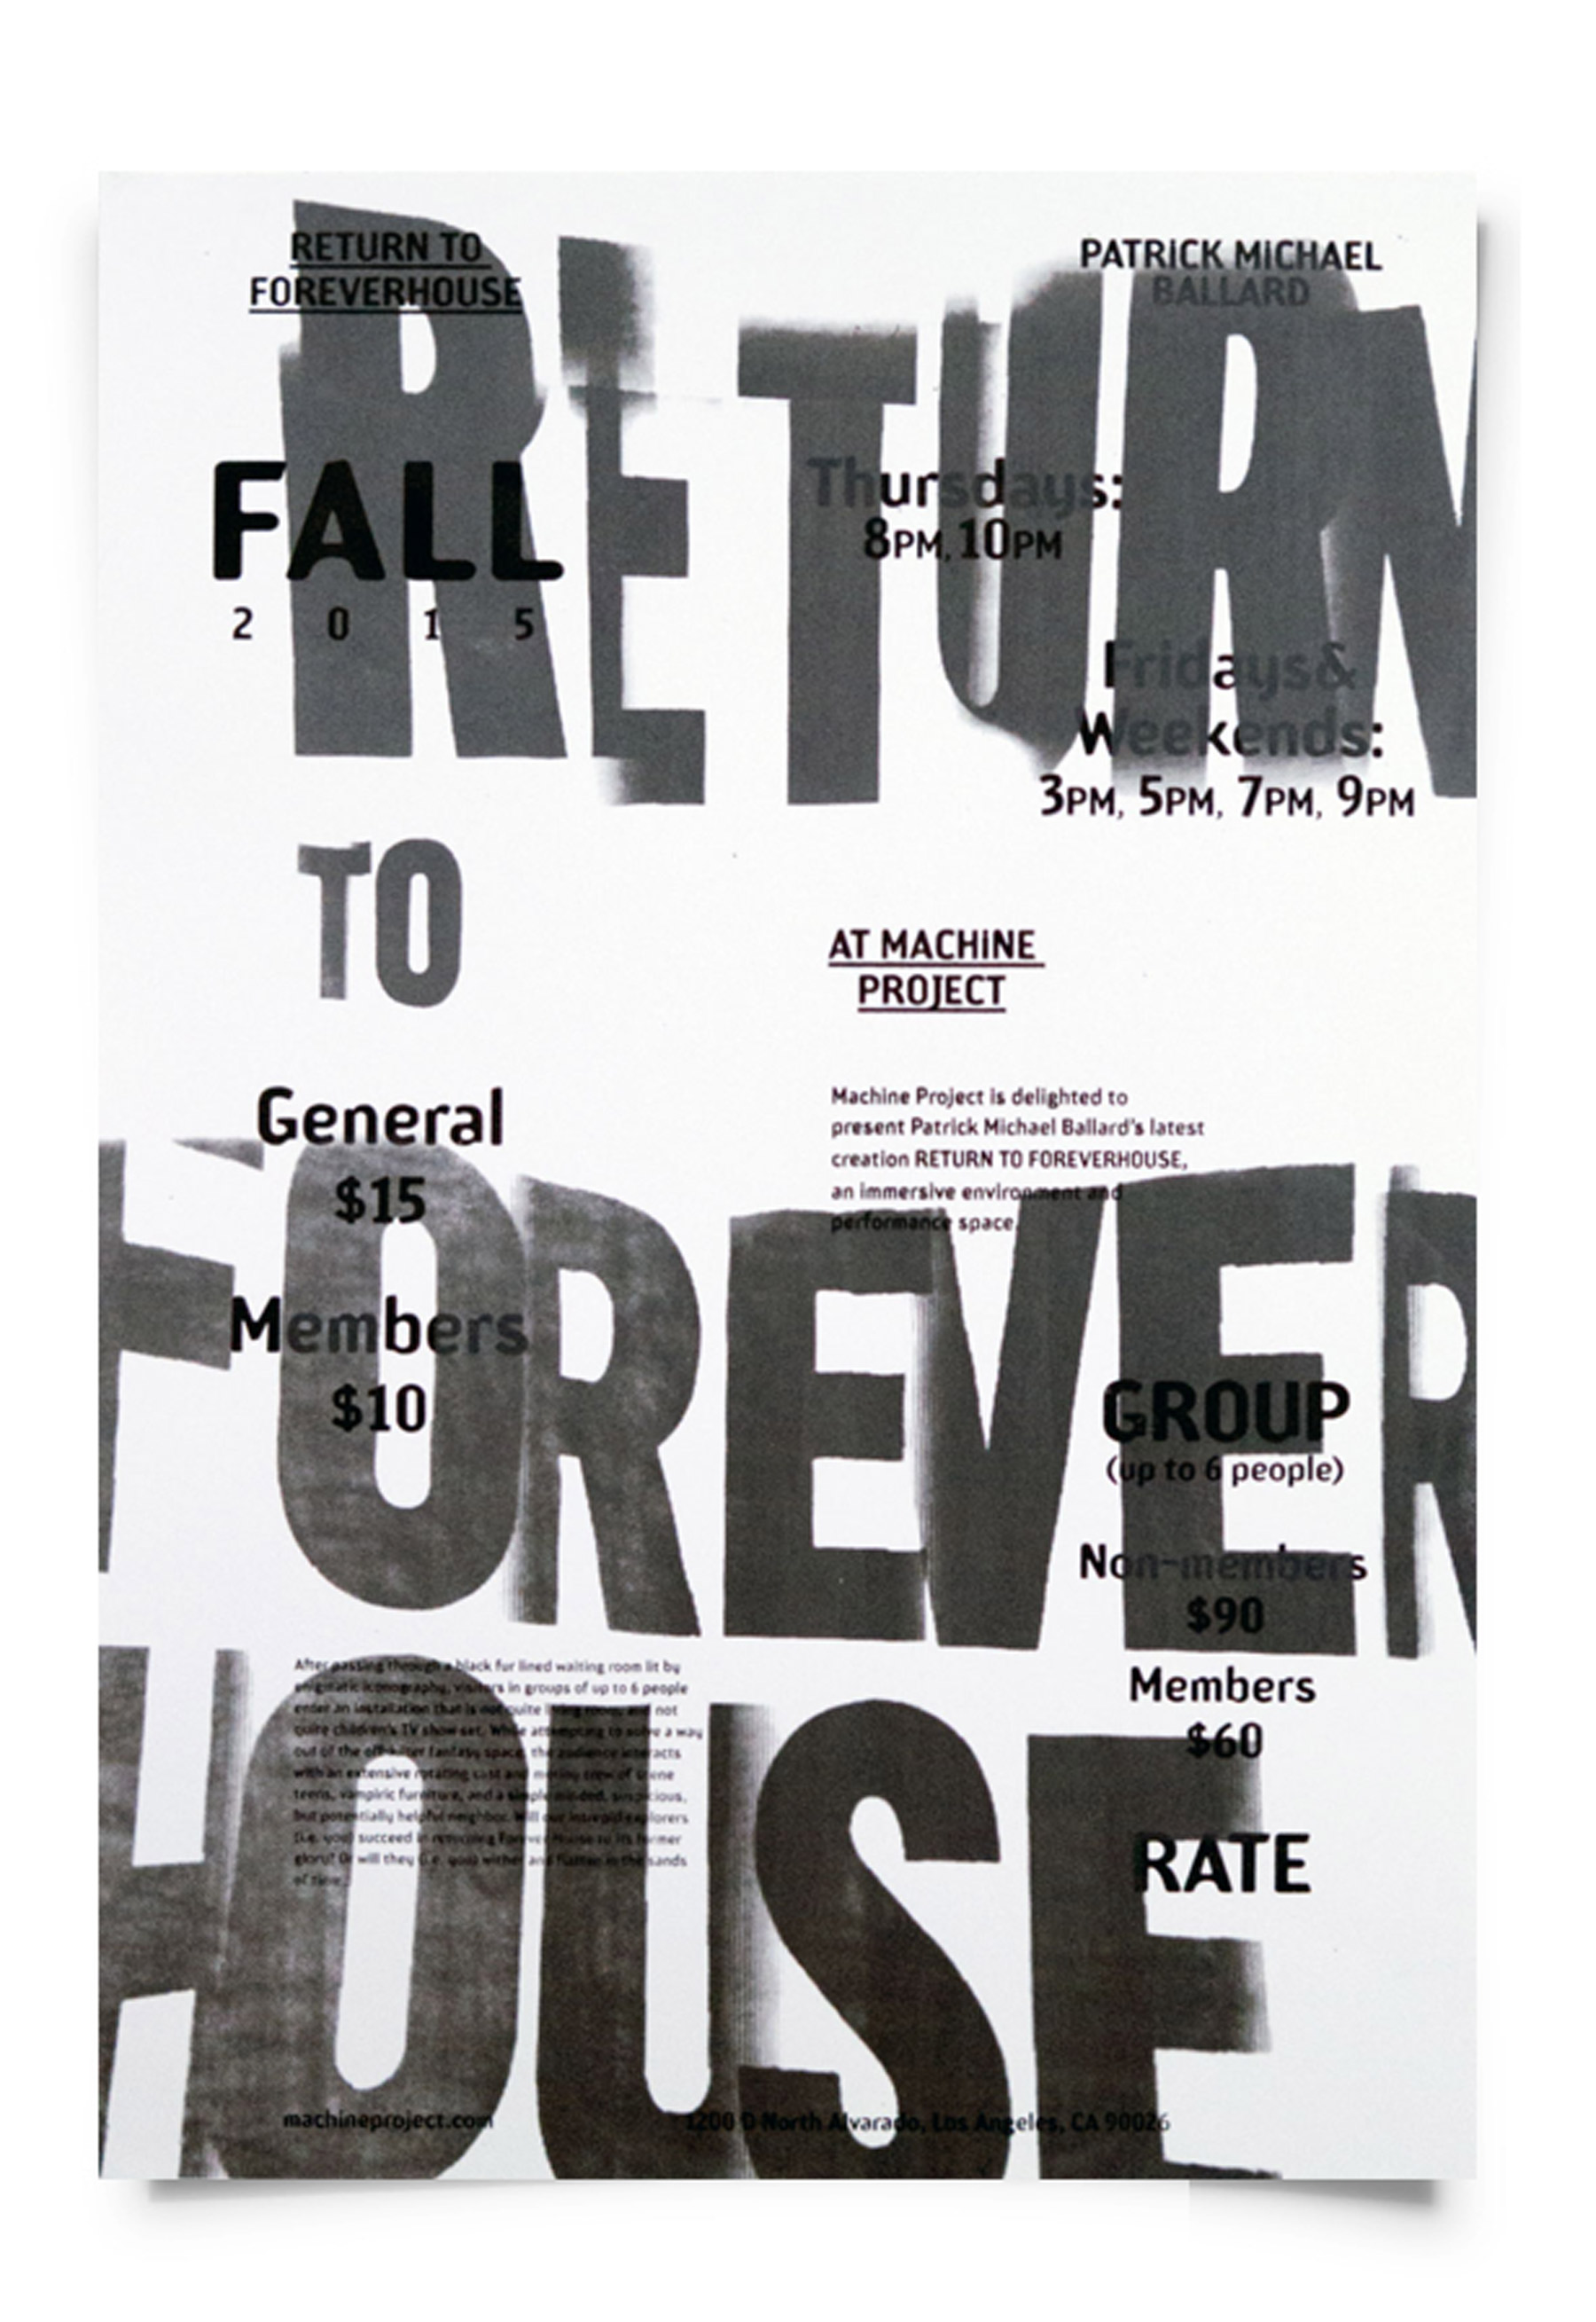 Jessica Lee RETURN TO FOREVERHOUSE [Poster, Typography]